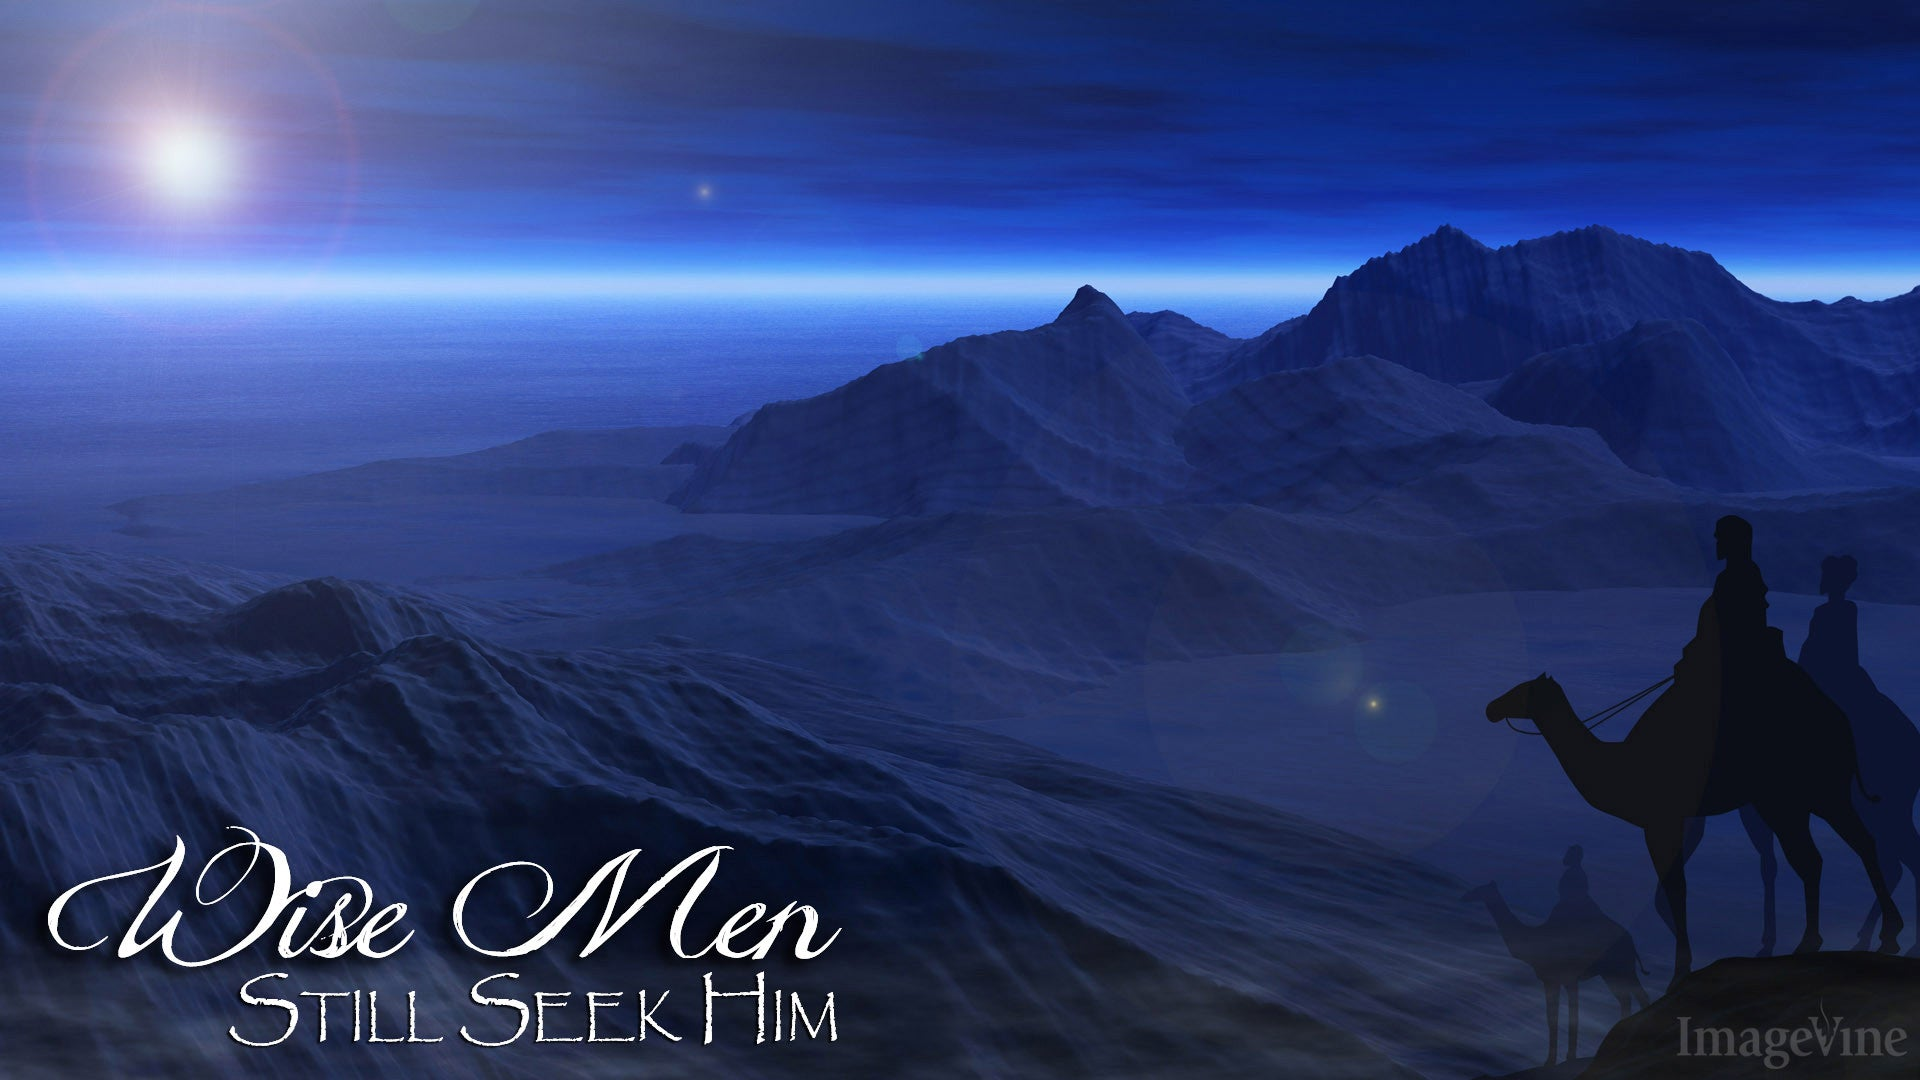 free christmas backgrounds, quotes, wise men, still seek him, desert